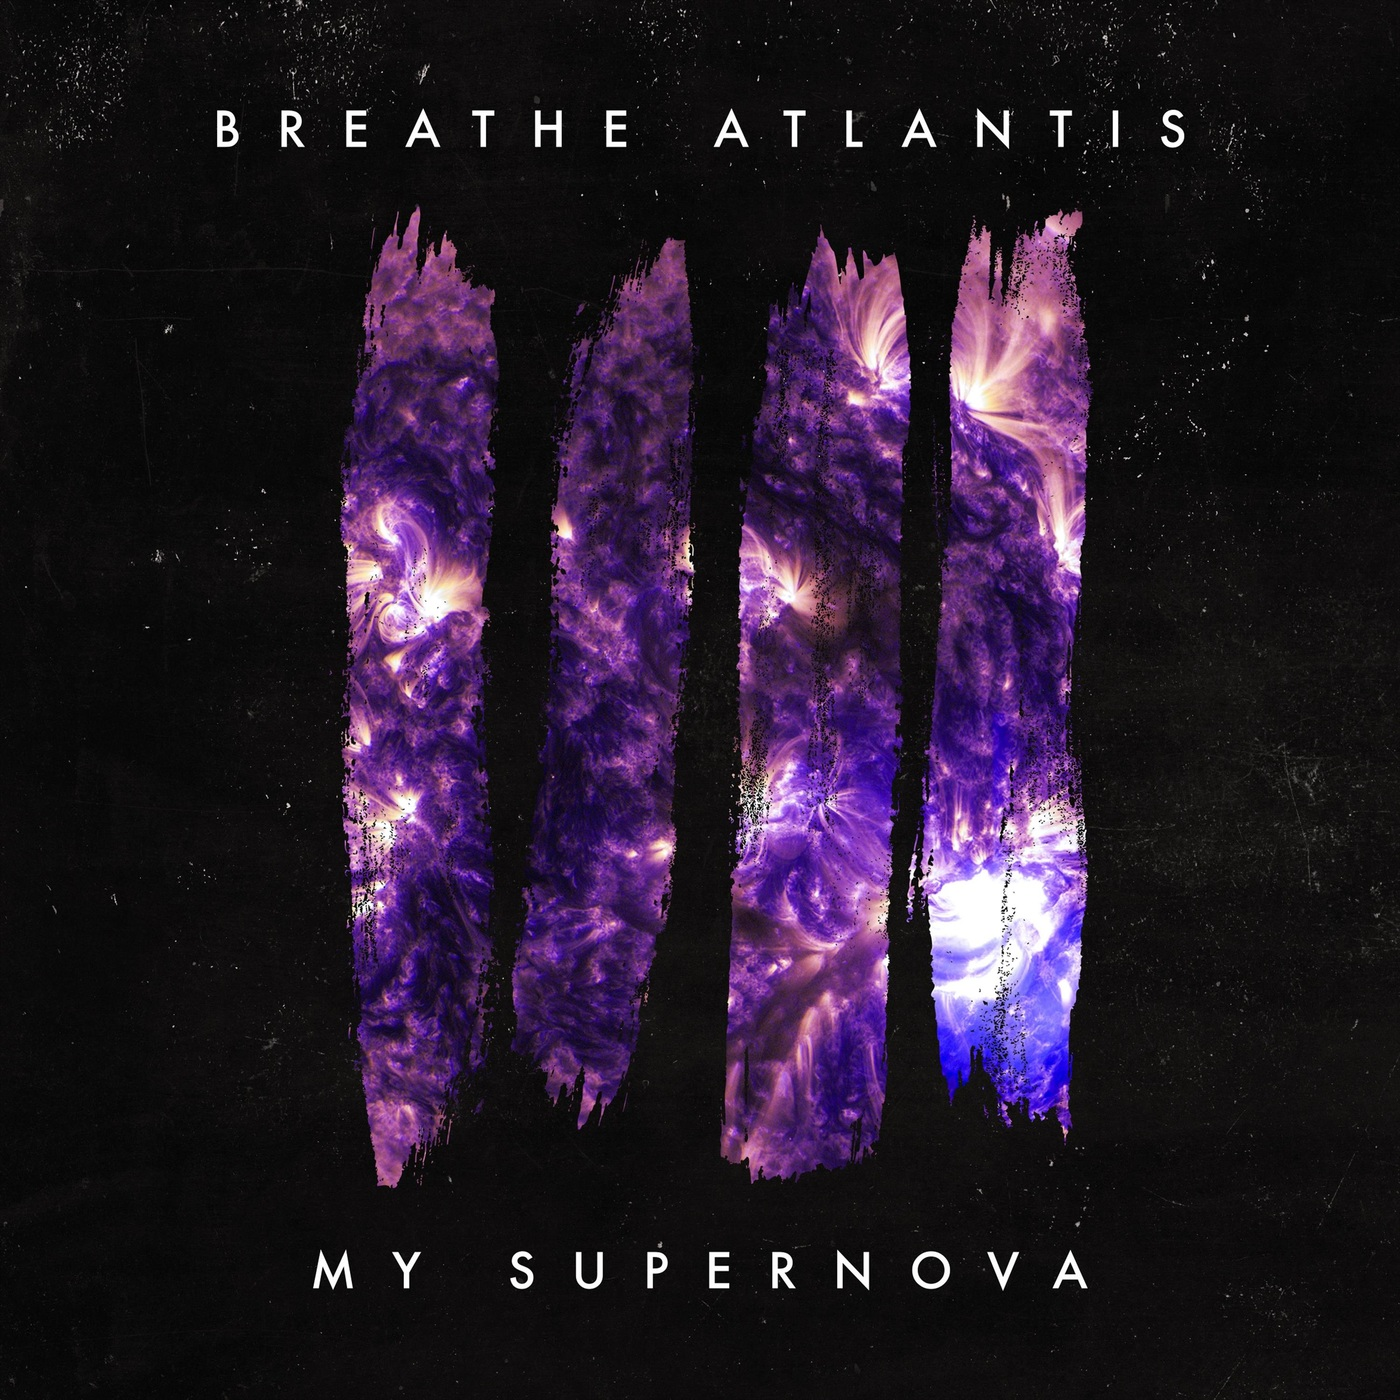 Breathe Atlantis - My Supernova [single] (2018)